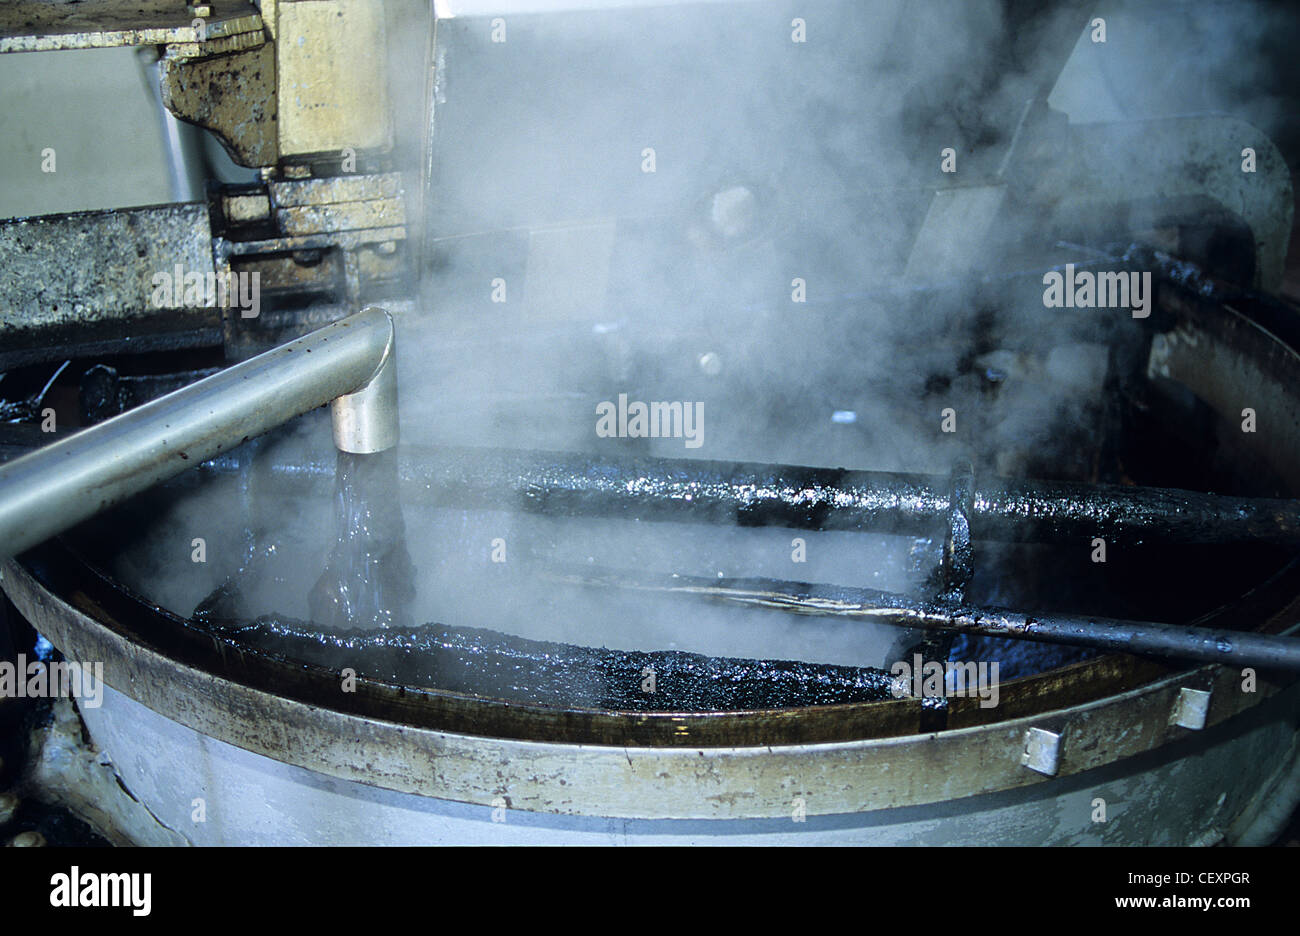 ITALY Calabria , Rossano , Amarelli factory produce liquorice confectionery from liquorice roots since 1871 Stock Photo